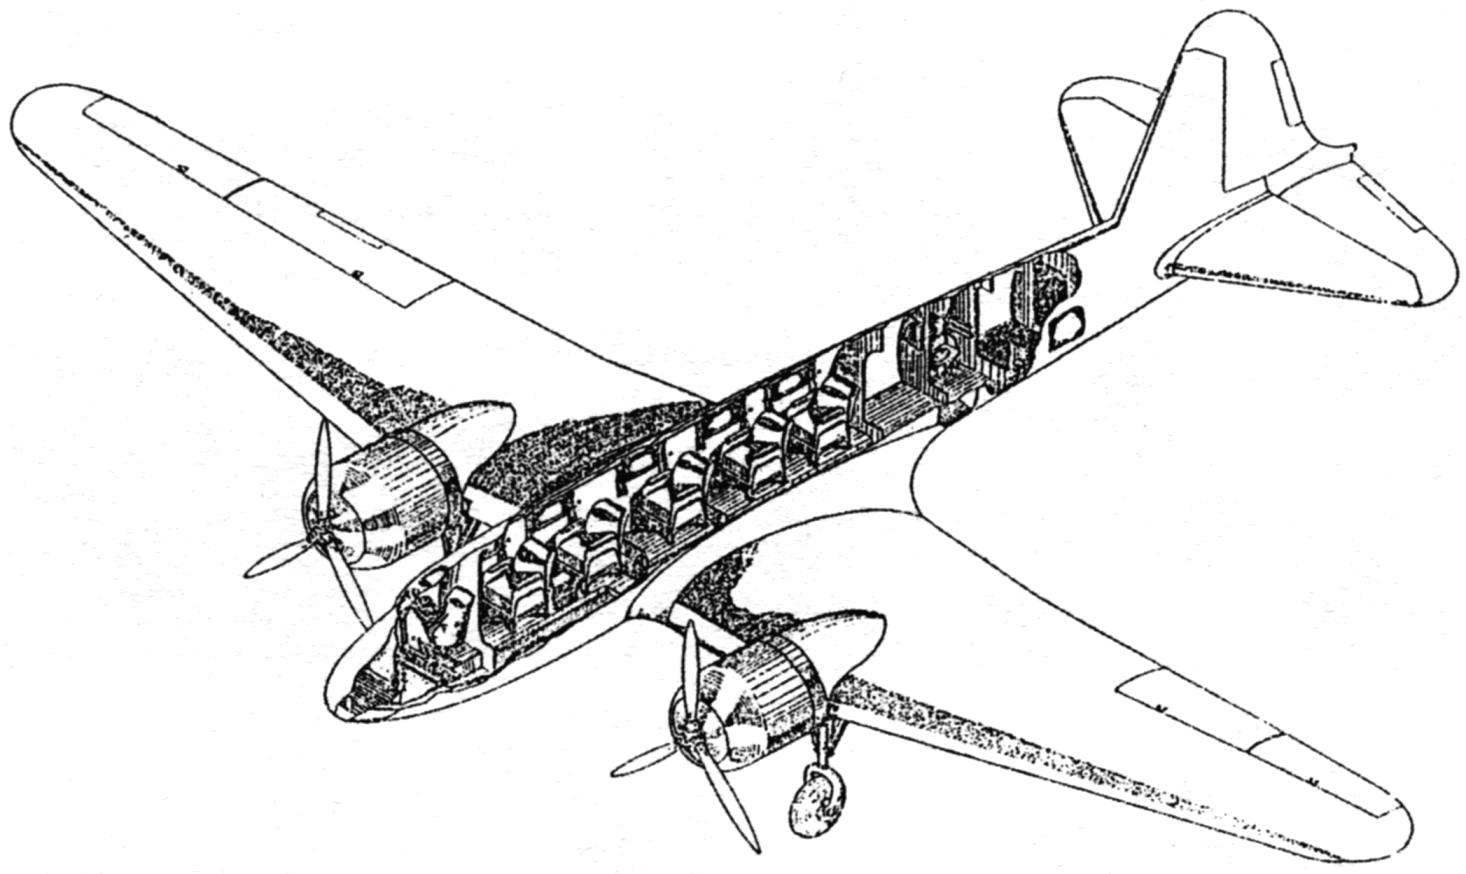 The layout of the PS-35